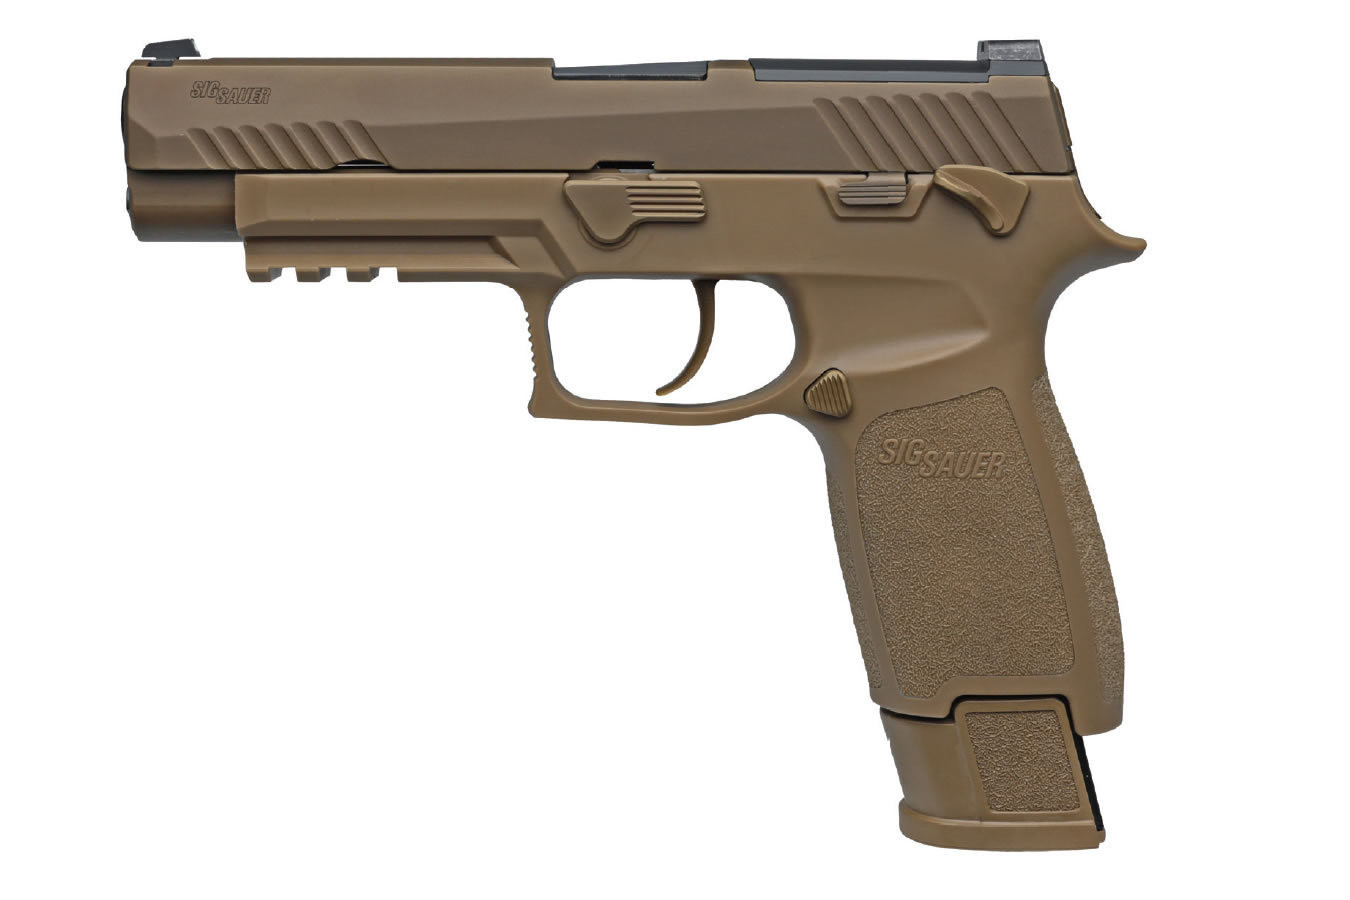 Sig Sauer - P320 M17 Commemorative Edition 9mm Full-Size - (FDE) Striker-Fired Pistol